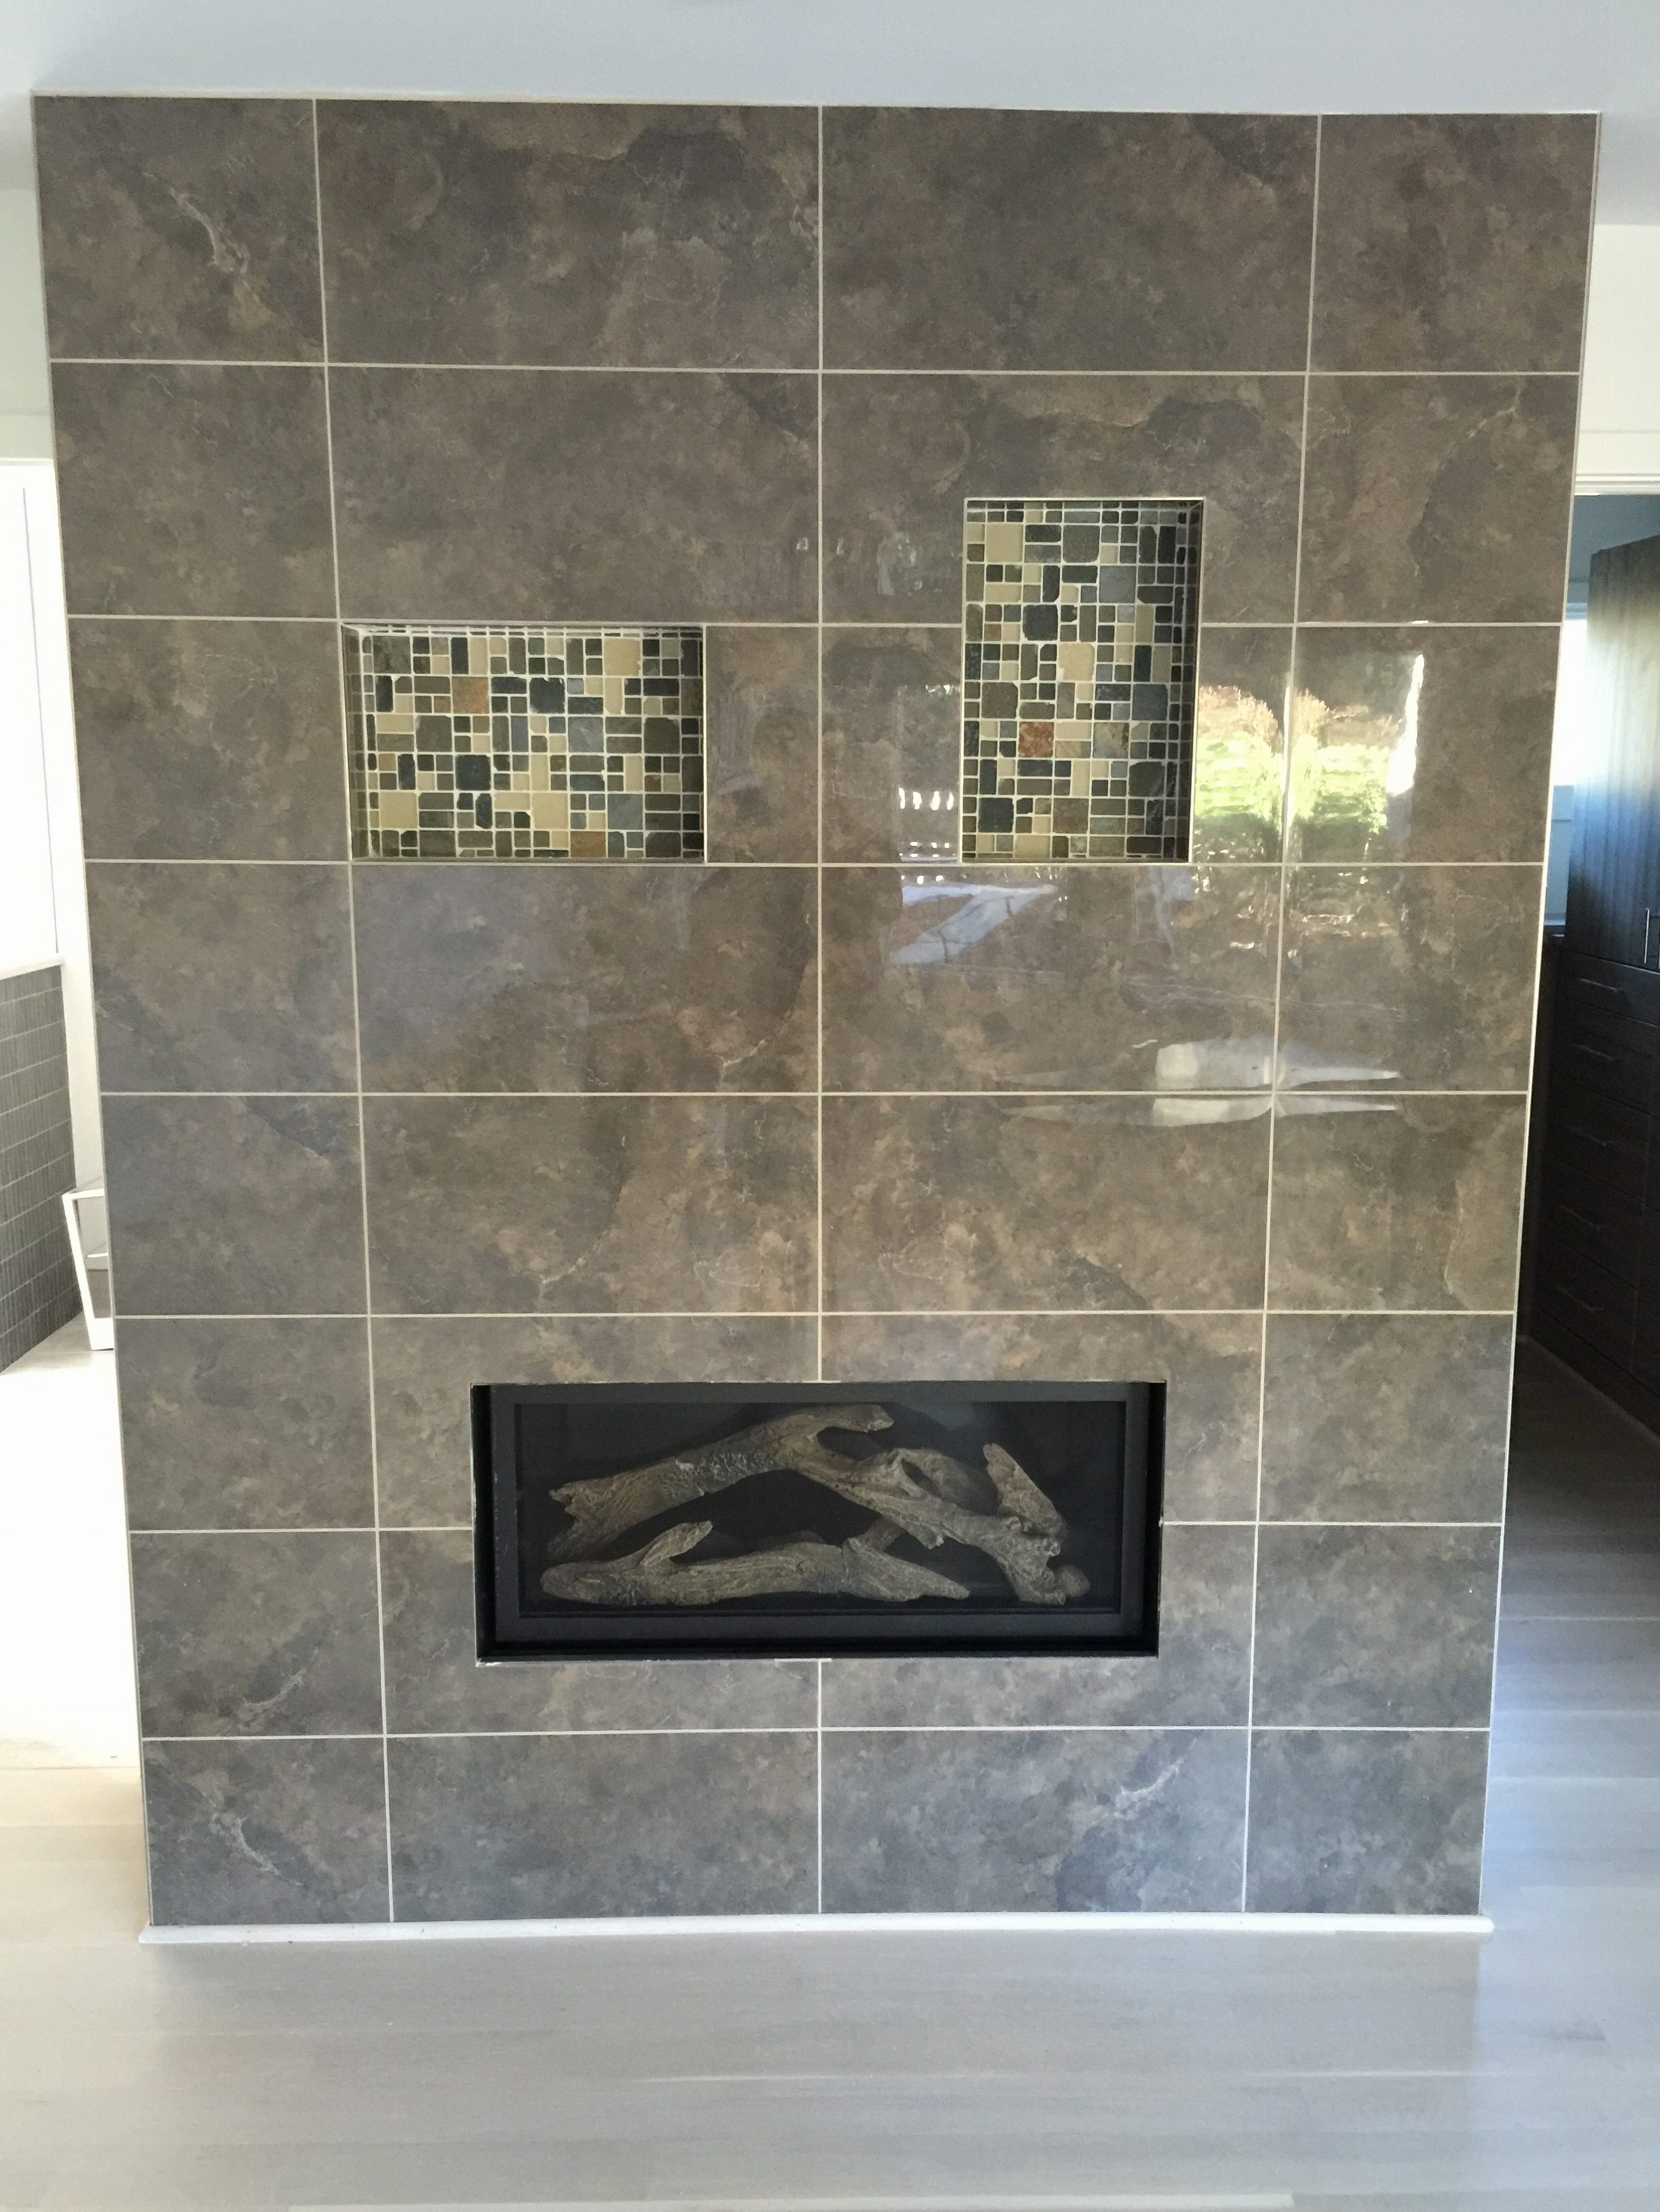 finished minimalistic wall using gorgeous floor tile and s black house oversized the pin ravine tiled to a fireplace ceiling porcelain